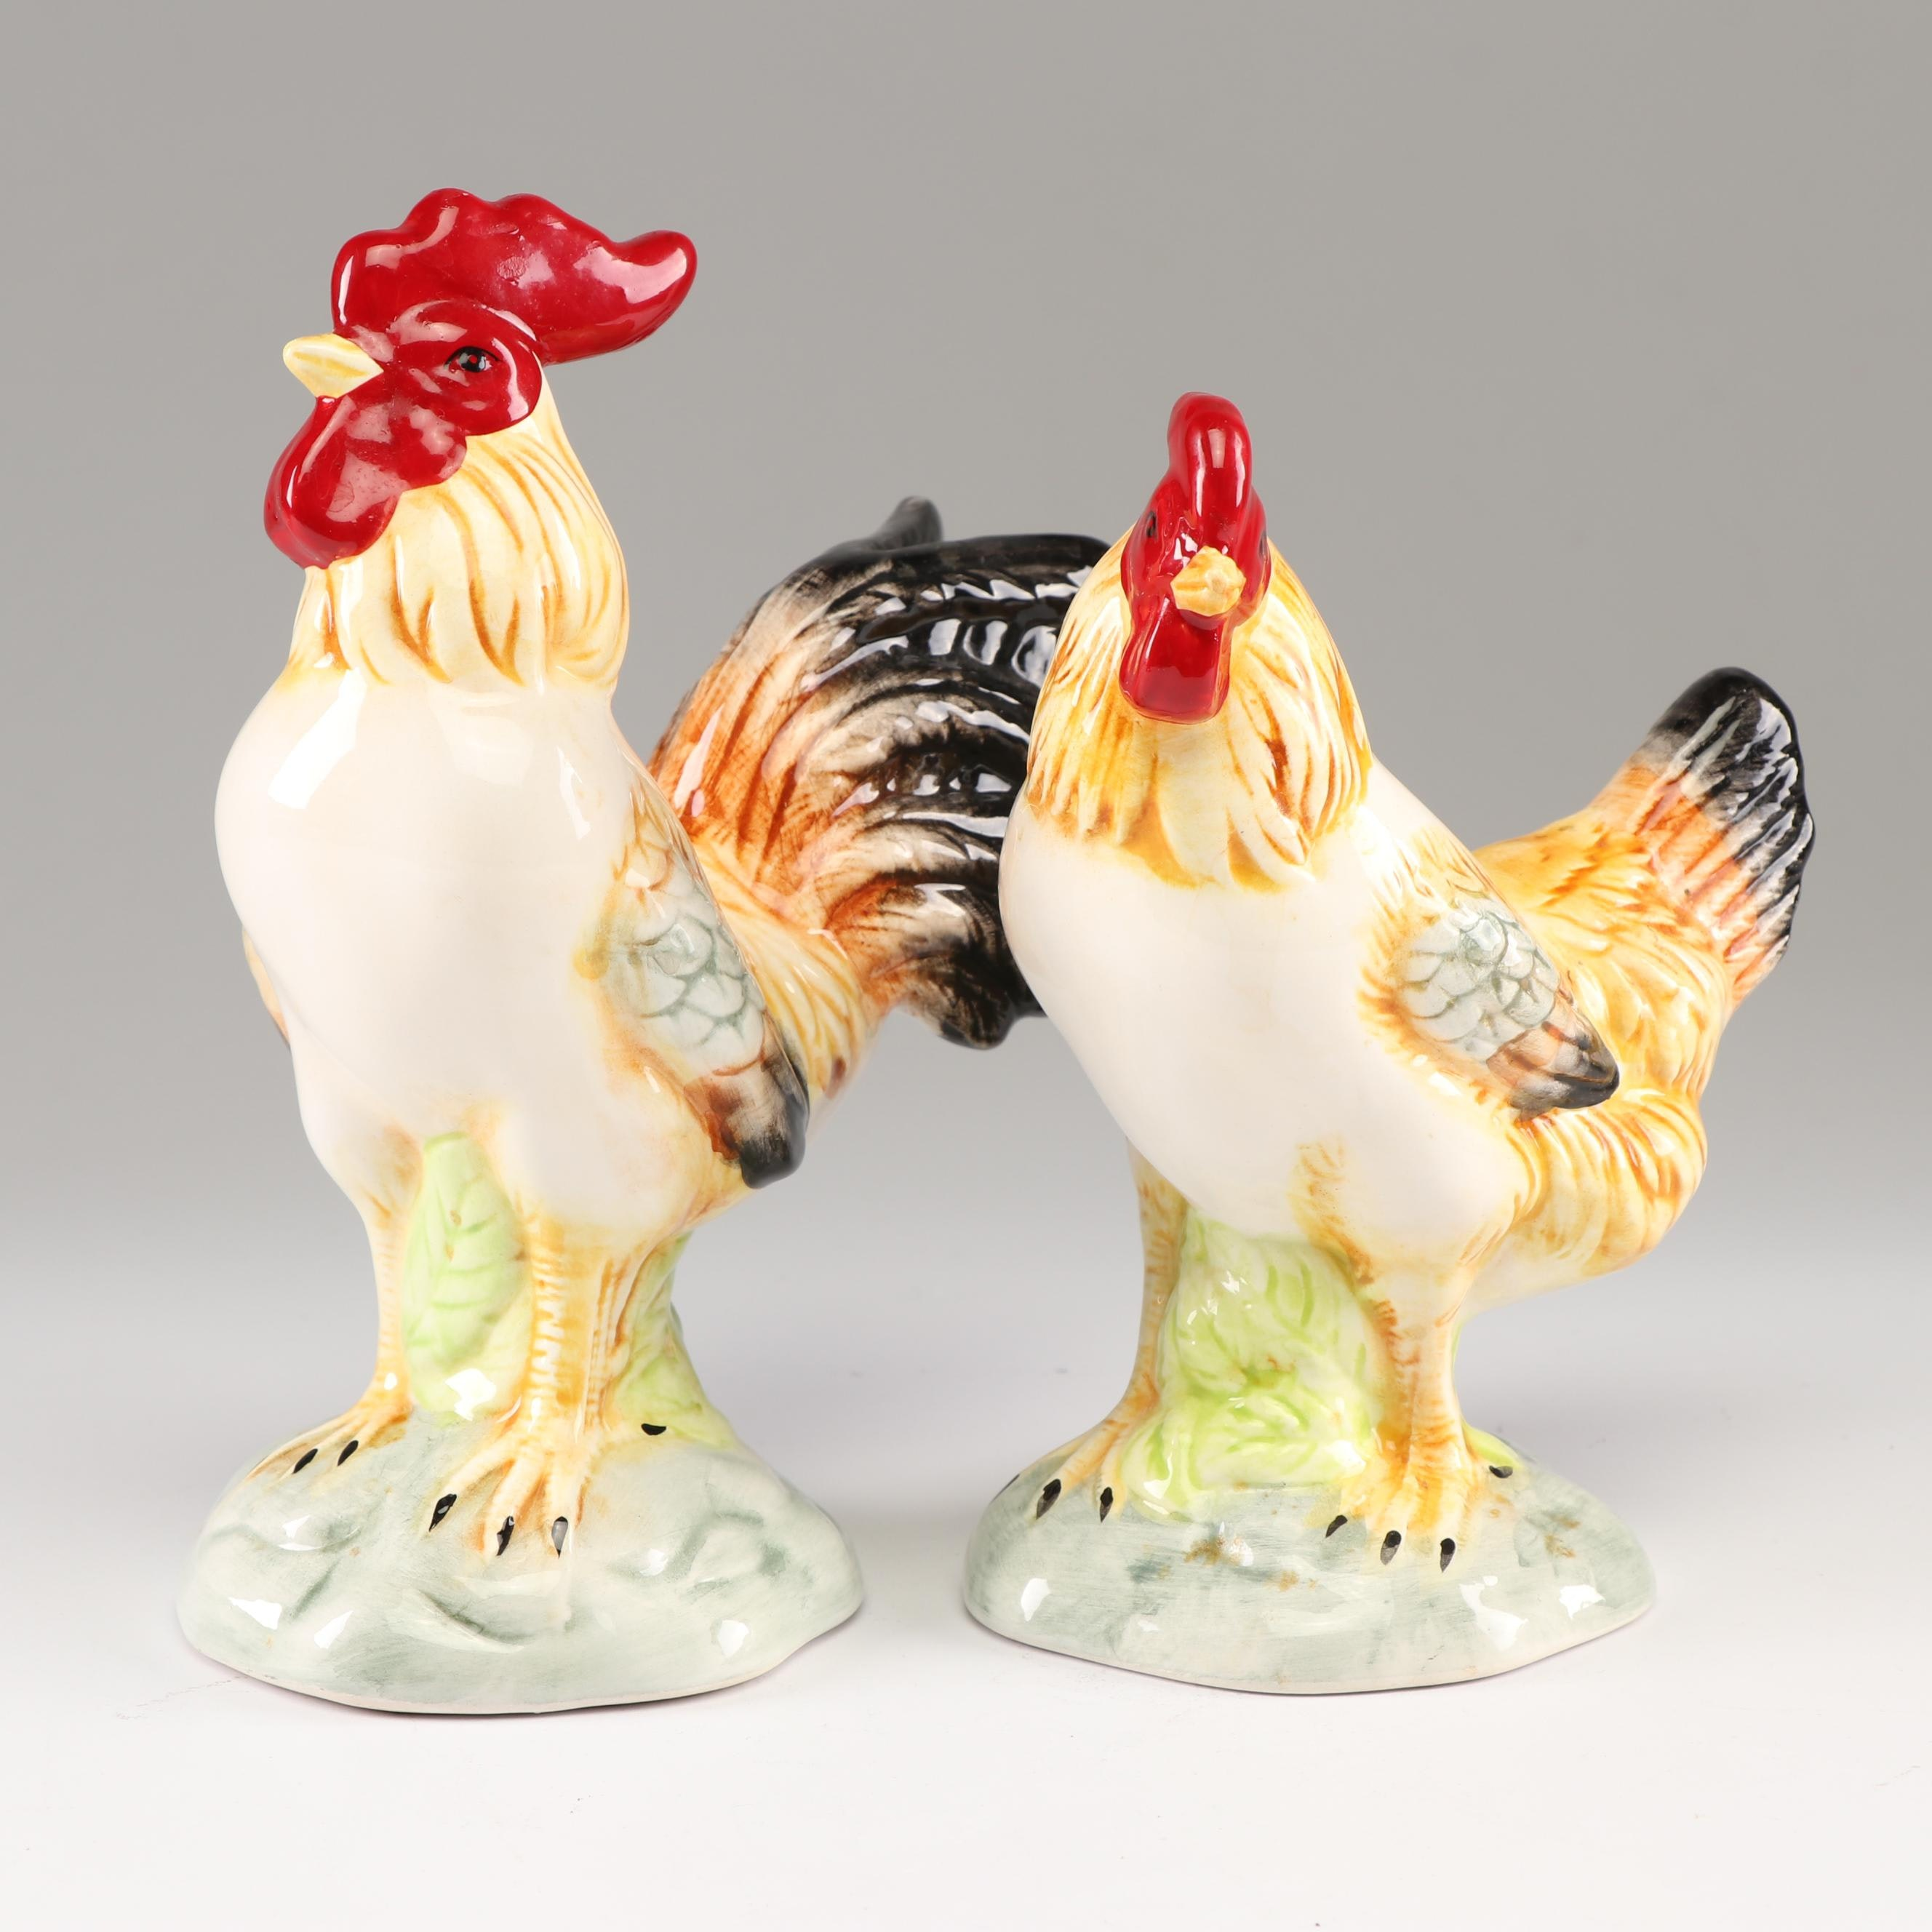 Hand-Painted Ceramic Rooster and Chicken Figurines